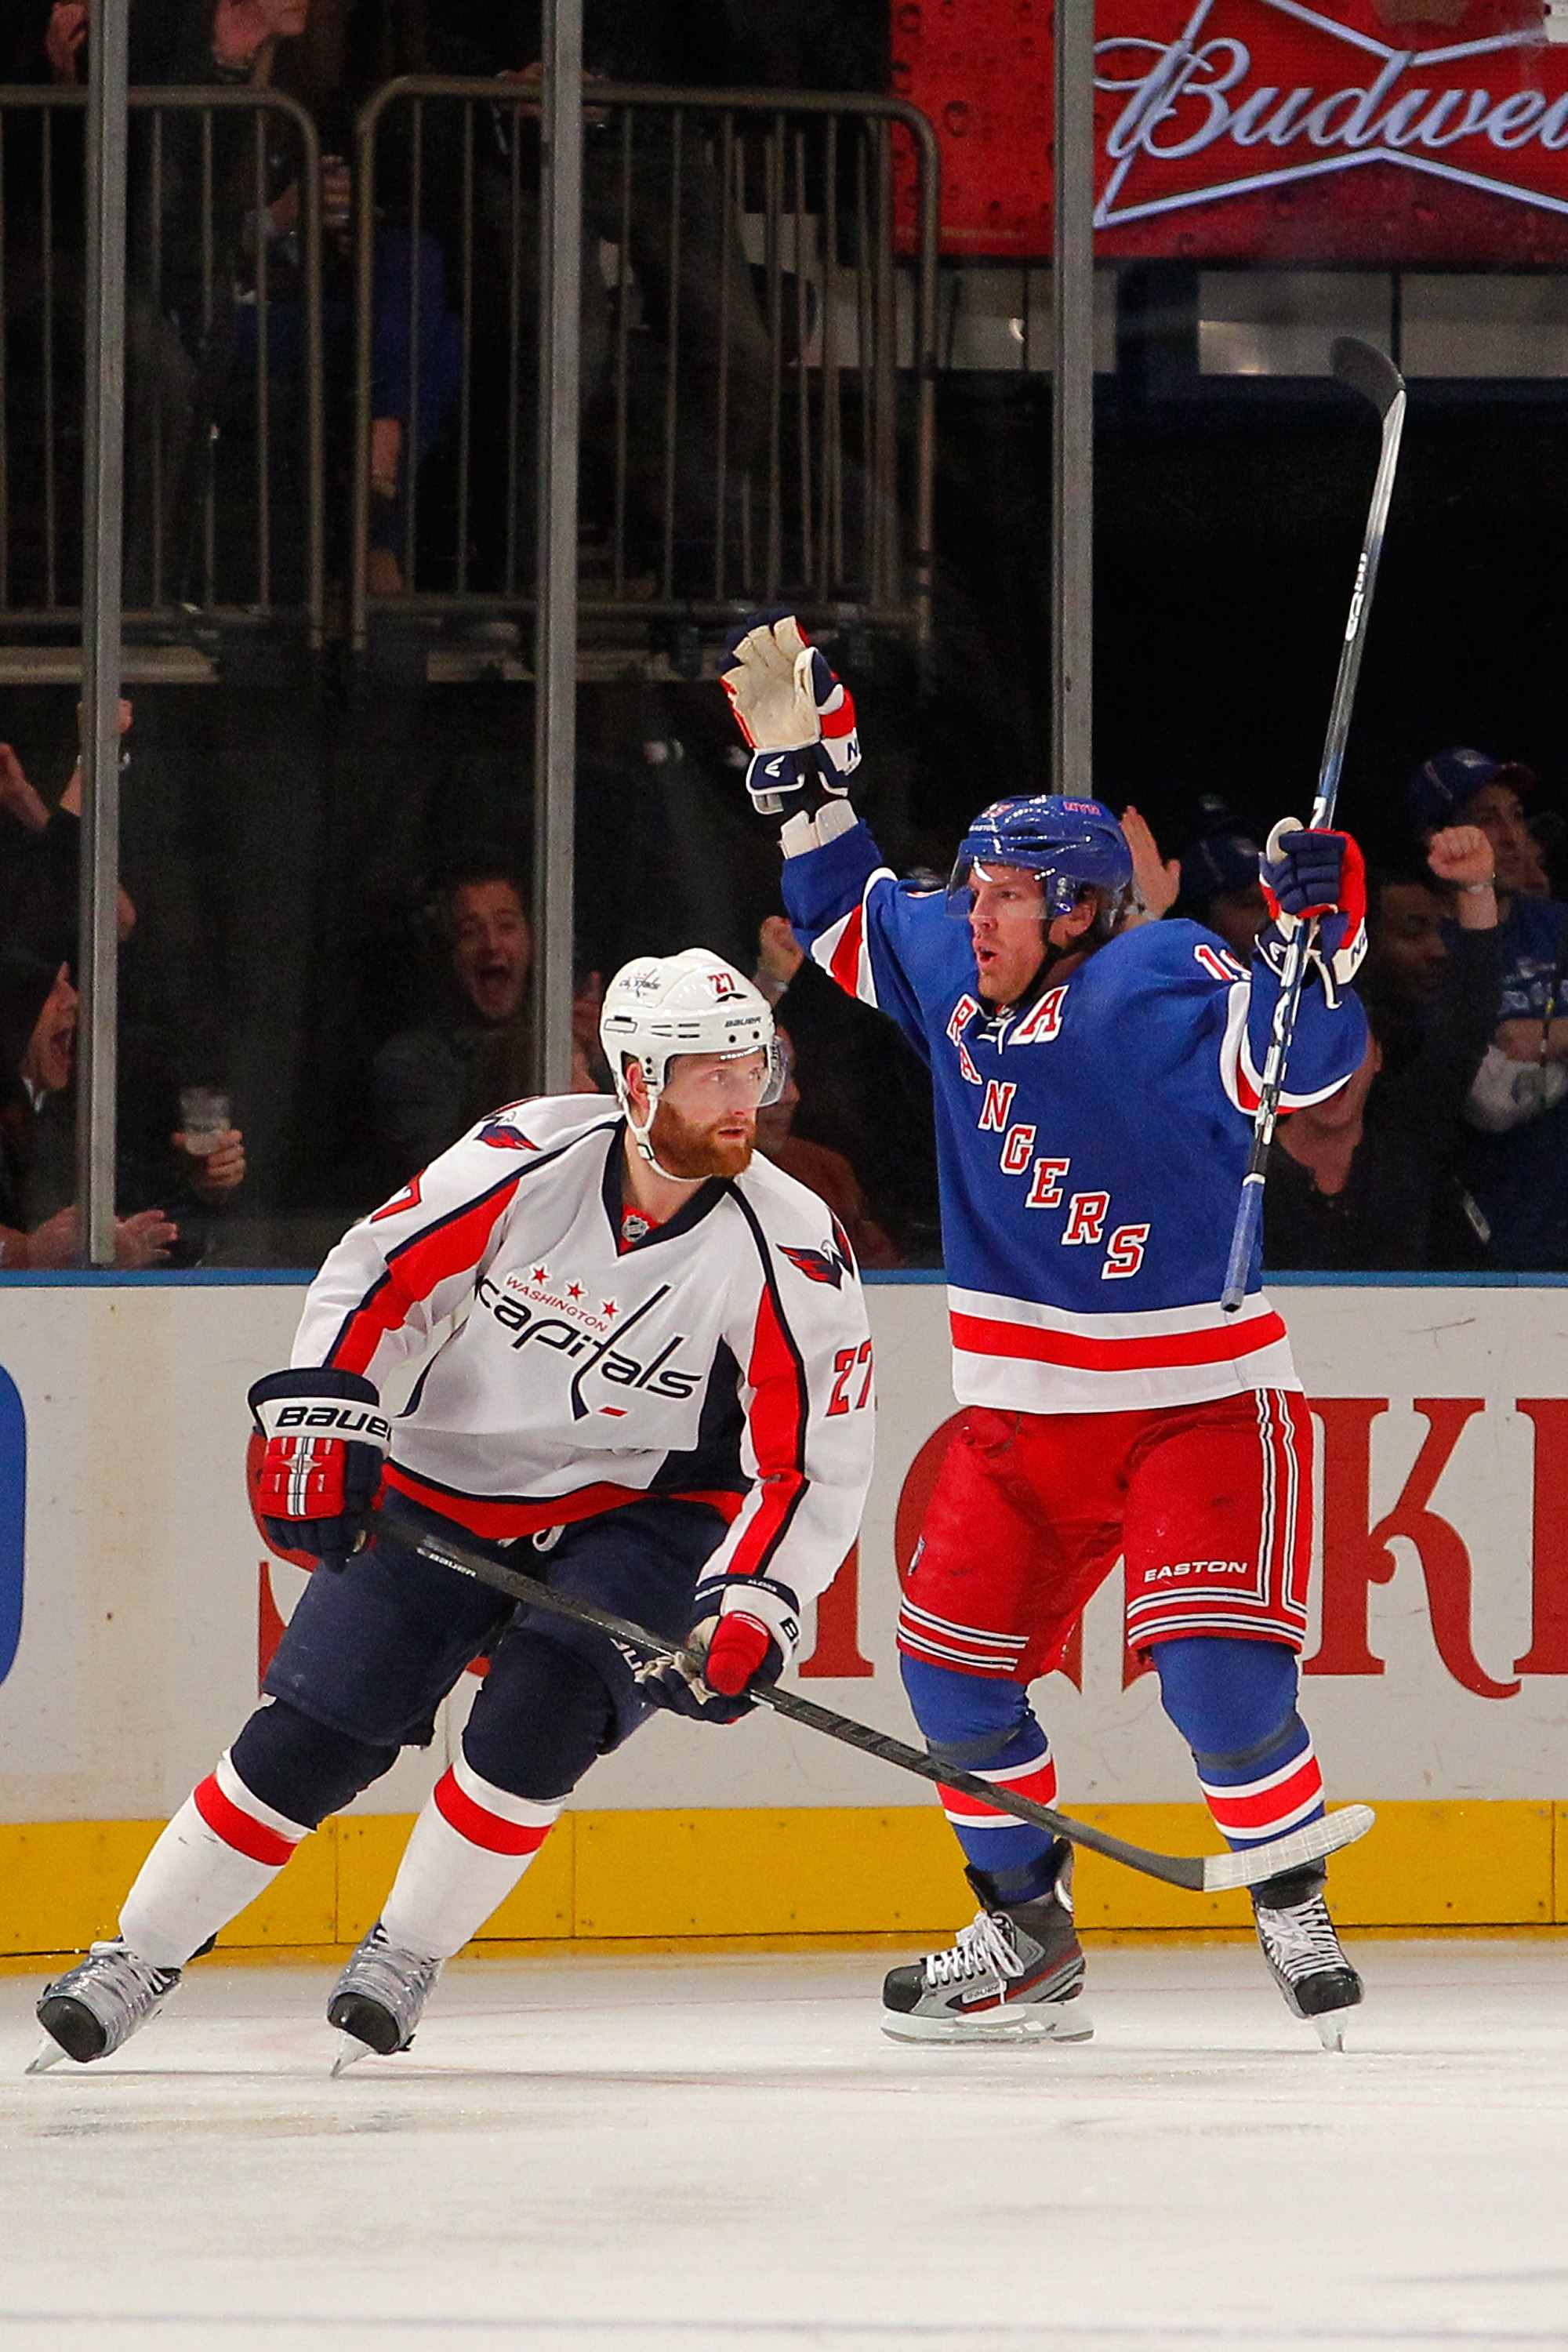 Brad Richards celebrates after scoring his first-period goal Saturday. (Getty)